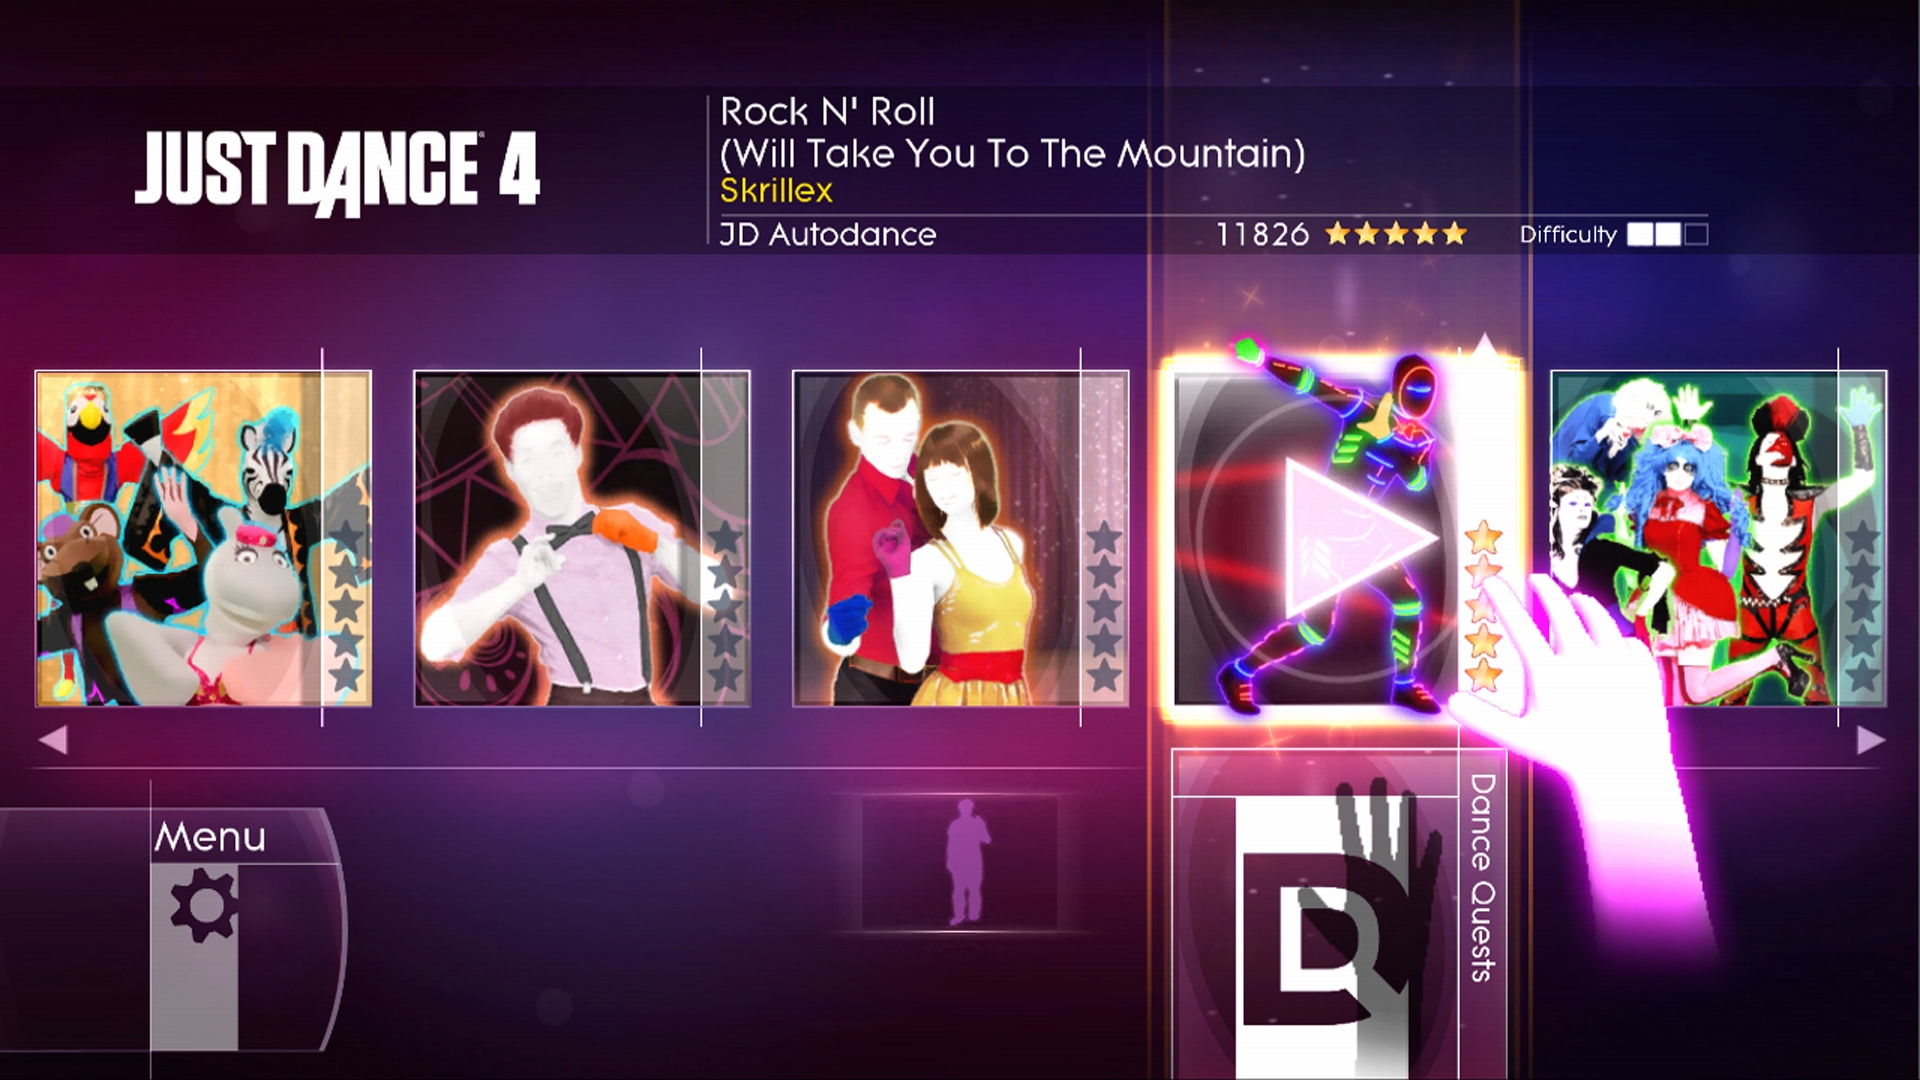 Just Dance 4 - Menu